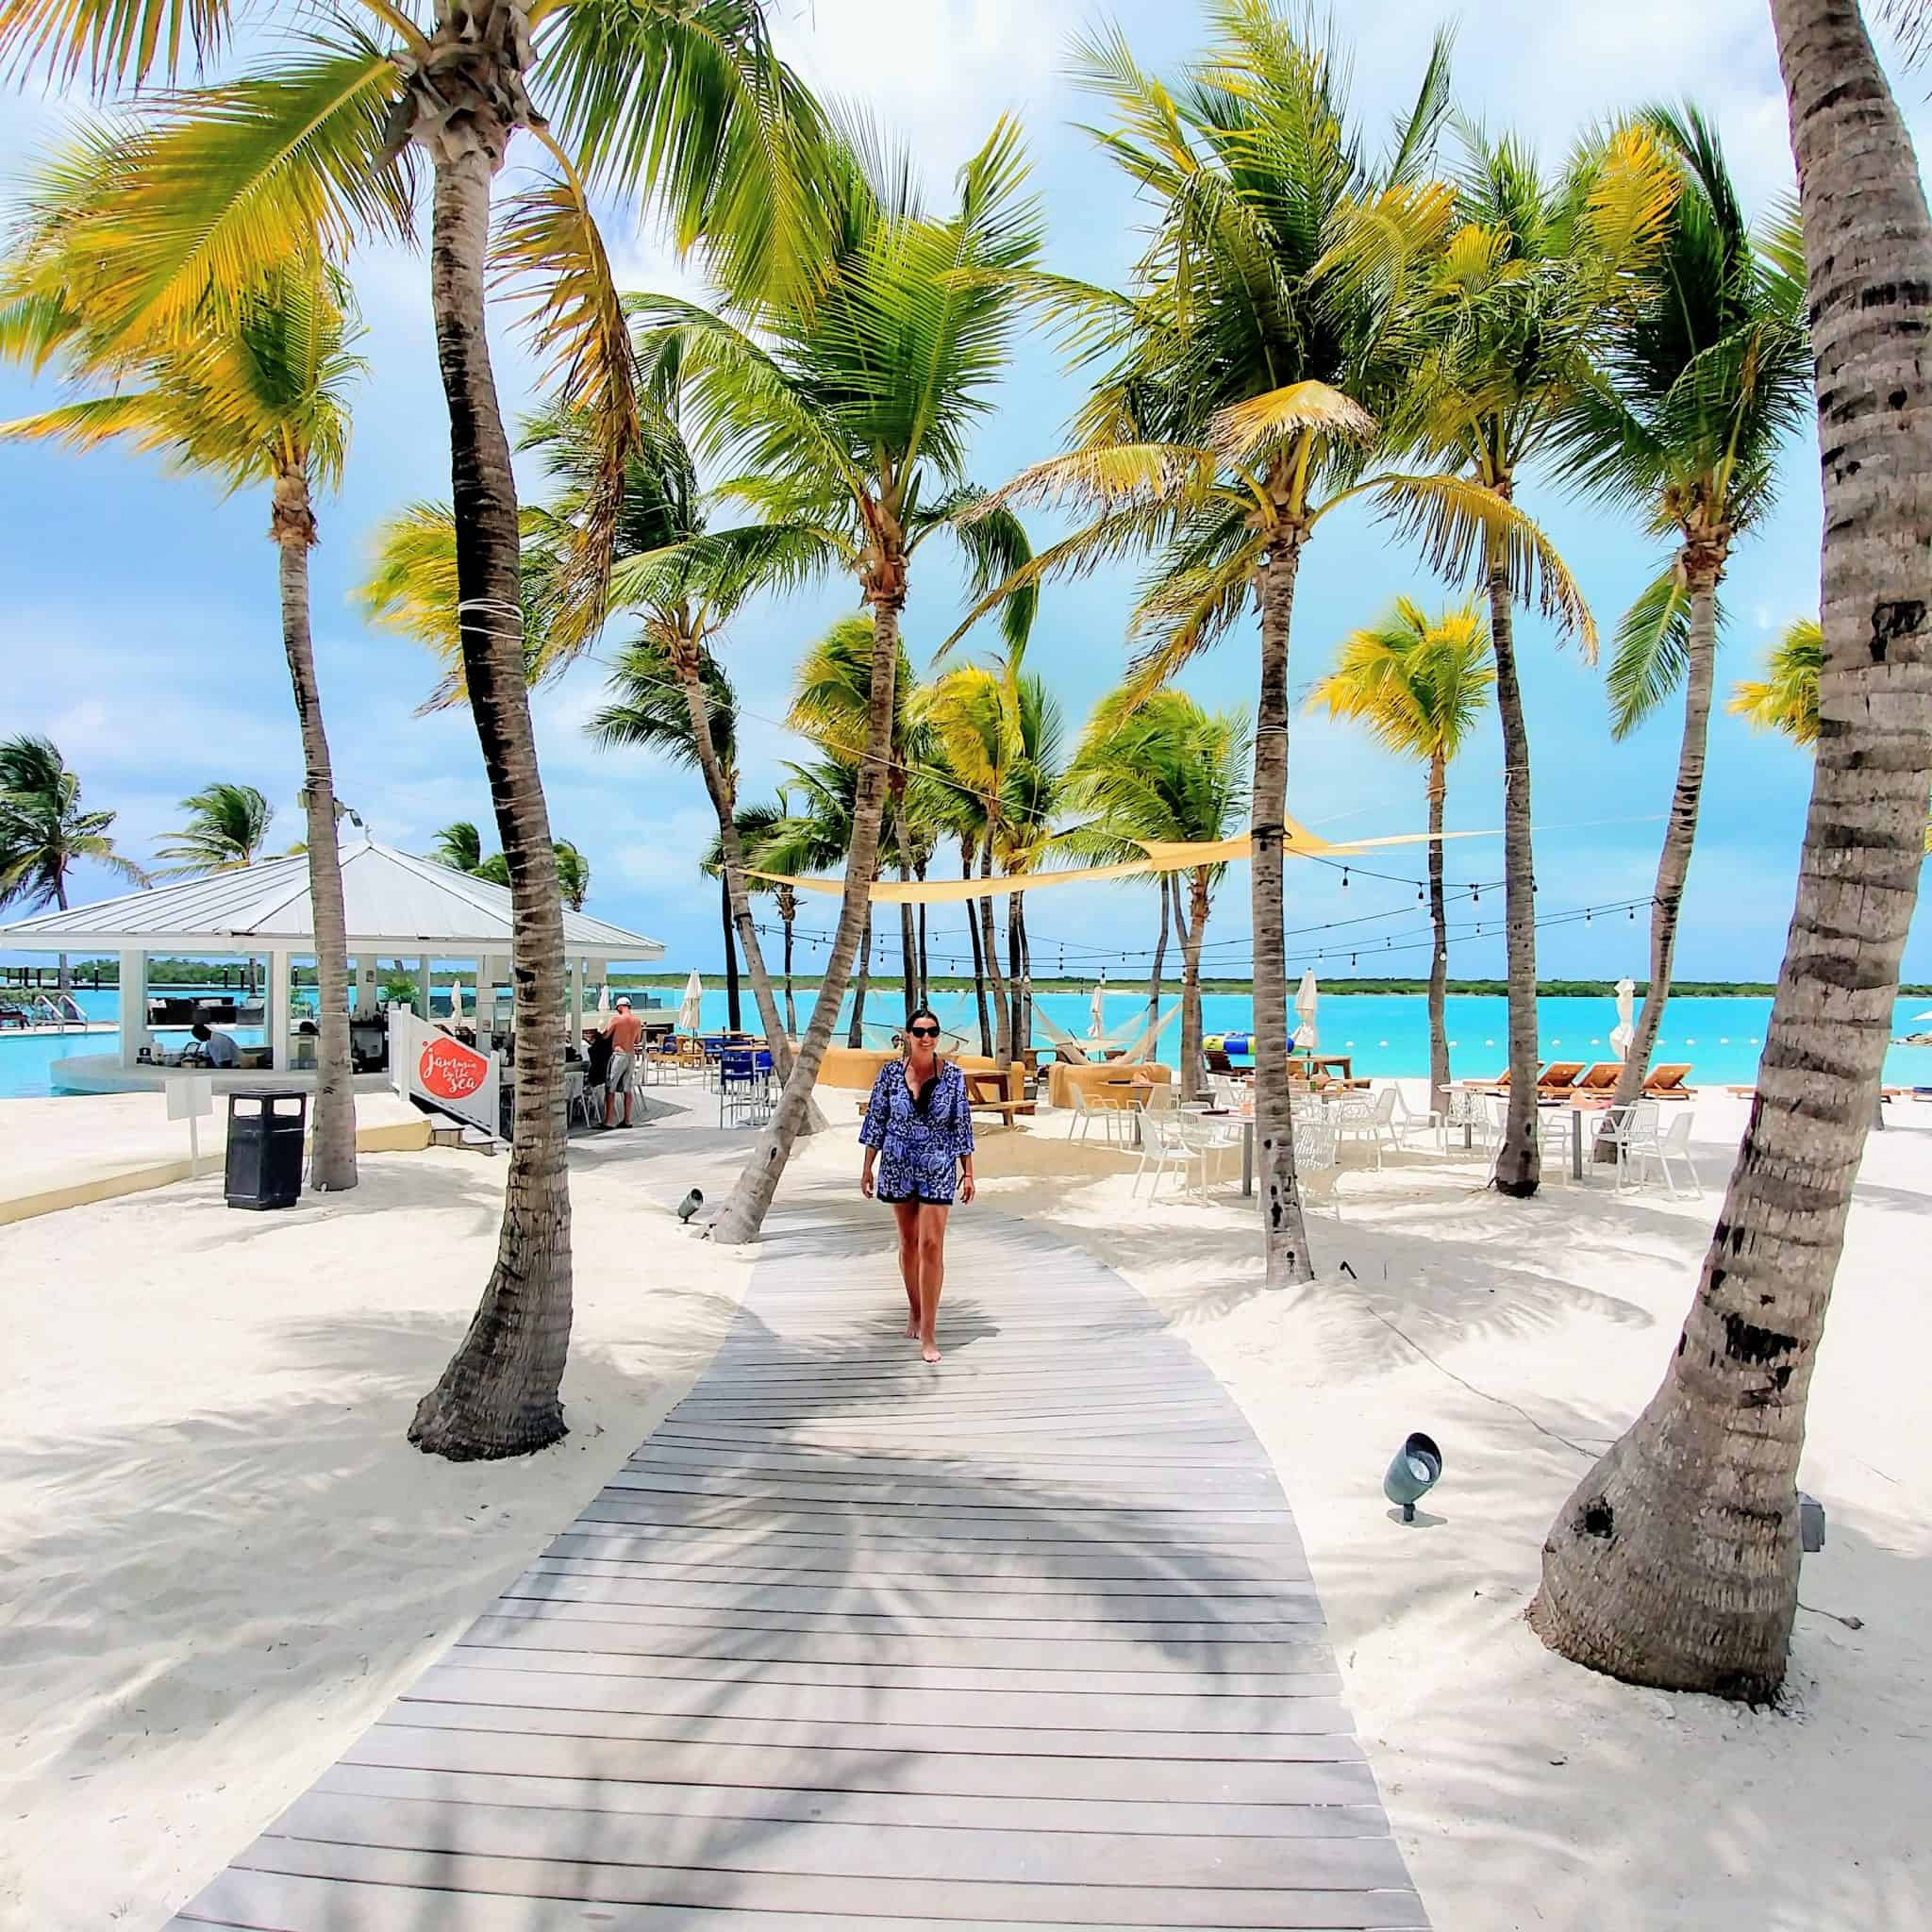 beach boardwalk with palm trees blue haven resort turks and caicos